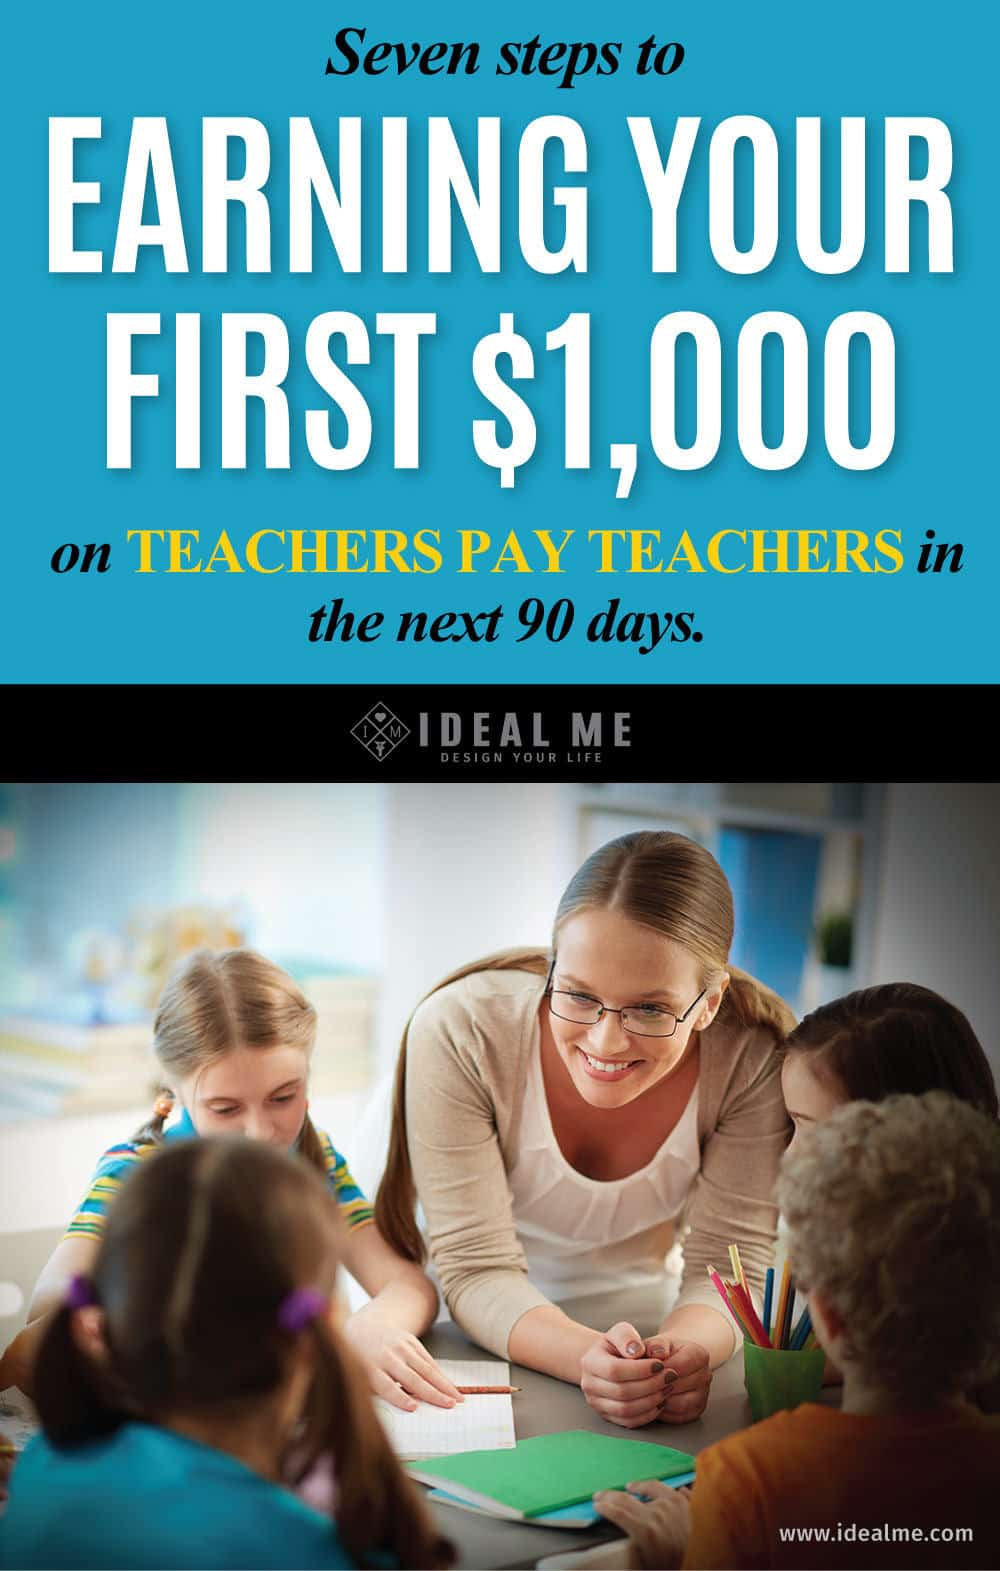 Are you a teacher? Check out this proven strategy to supplement your income selling your resources to educators globally, with Teachers Pay Teachers.